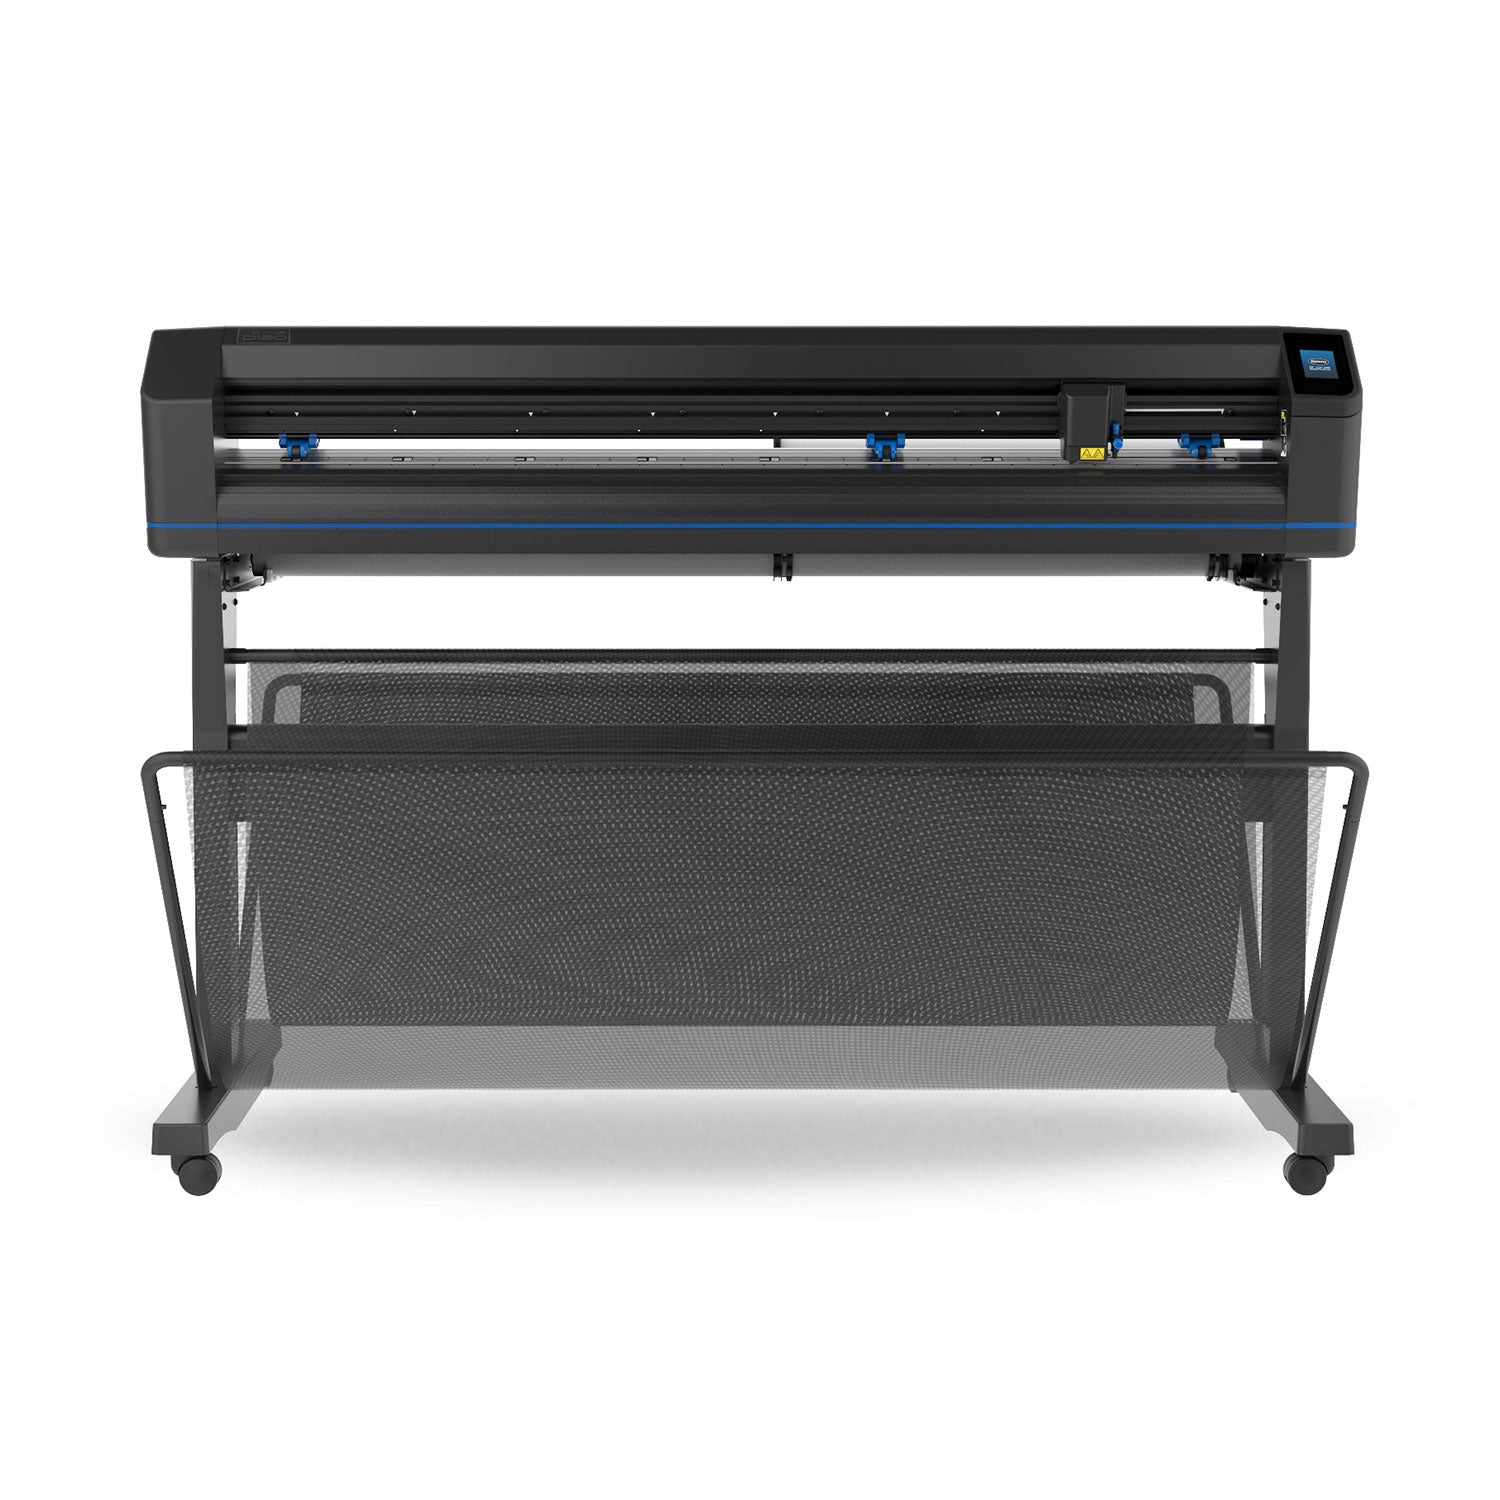 Summa S One D120 Vinyl Cutter